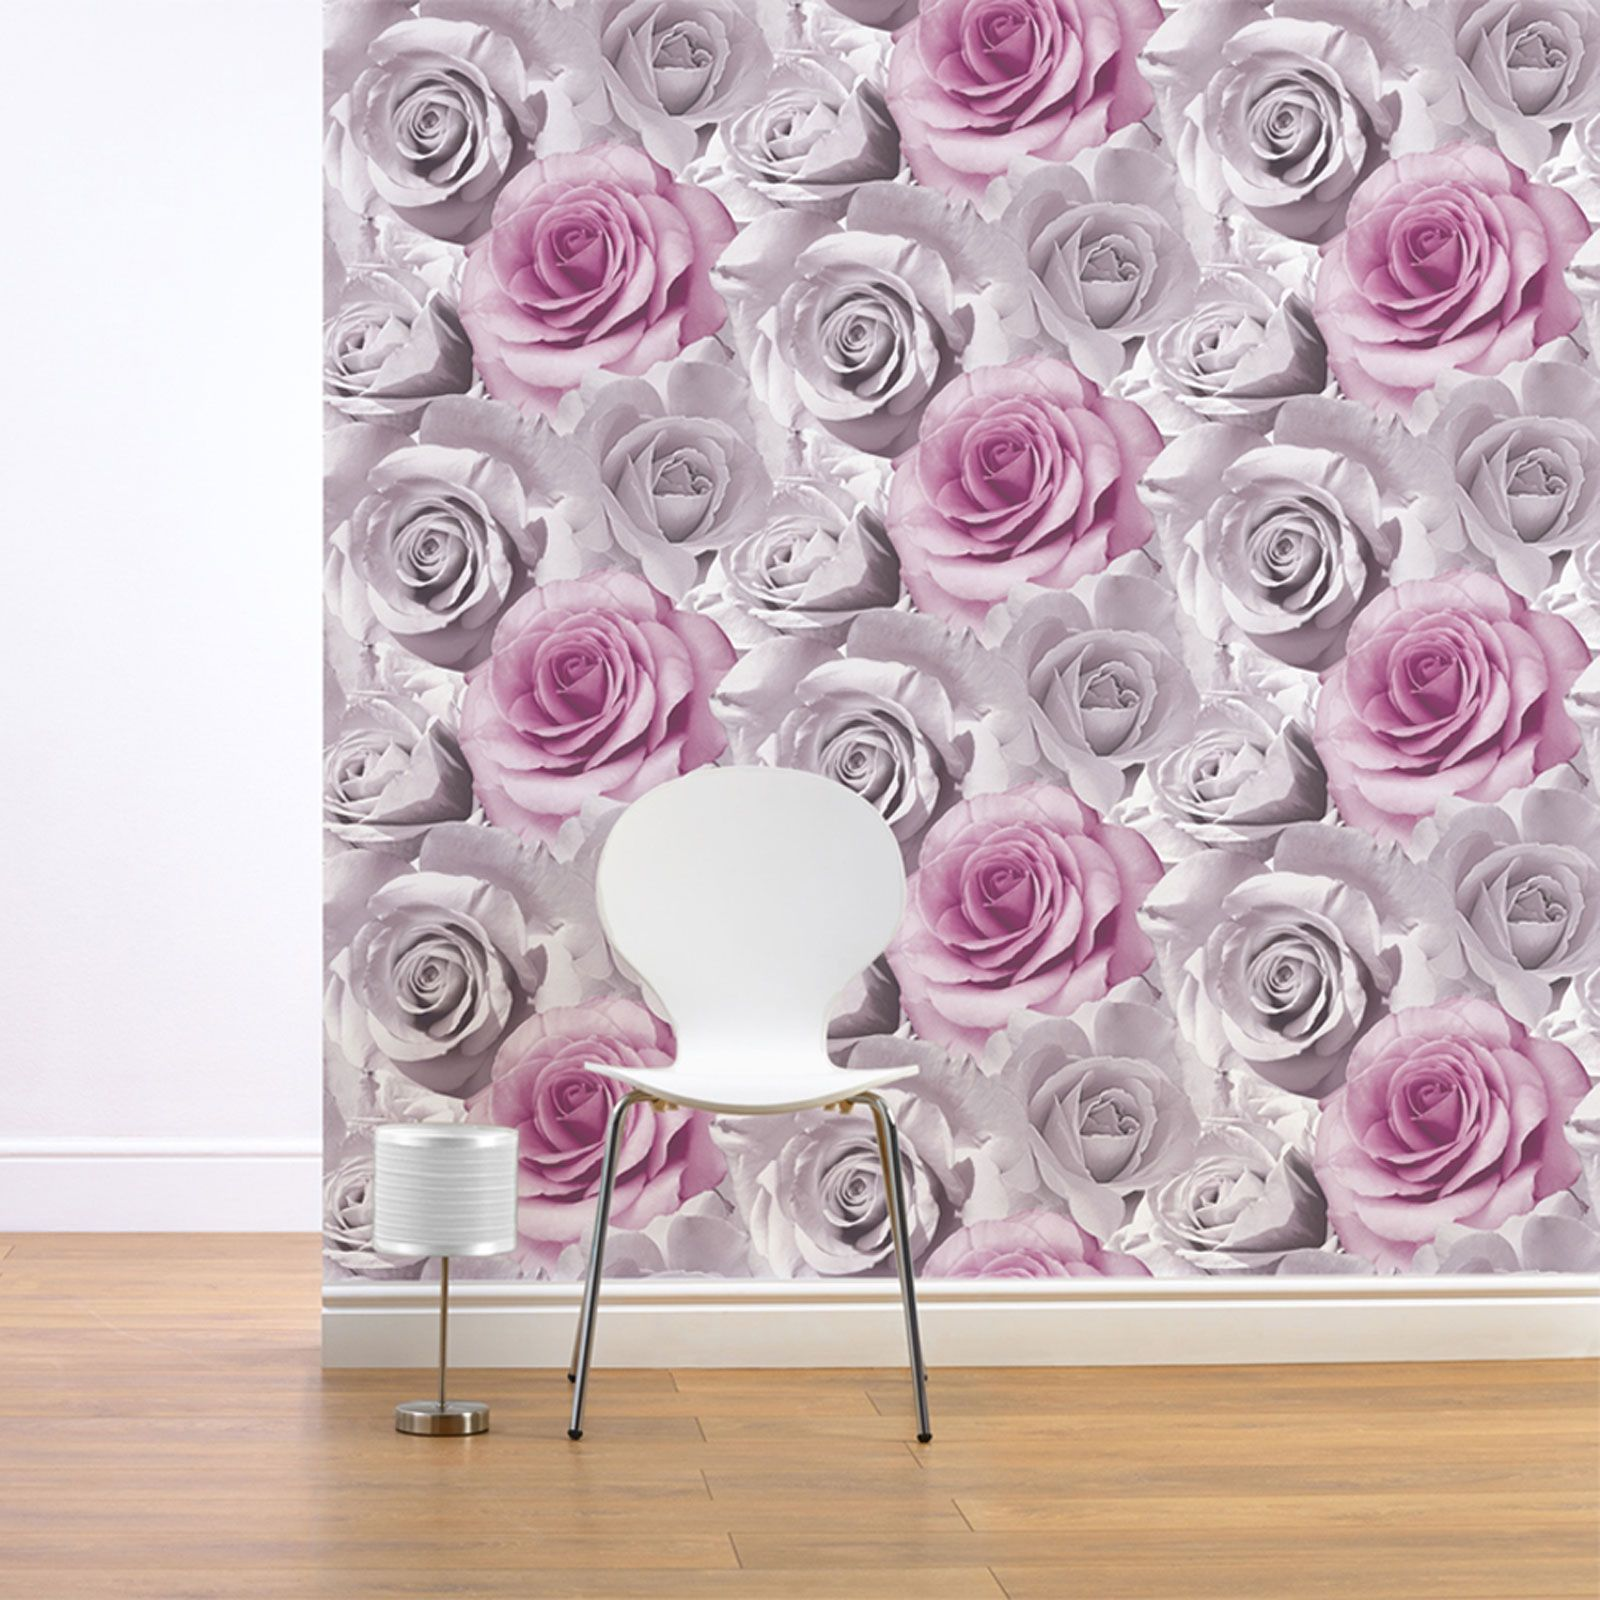 GIRLS CHIC WALLPAPER KIDS BEDROOM FEATURE WALL DECOR VARIOUS DESIGNS